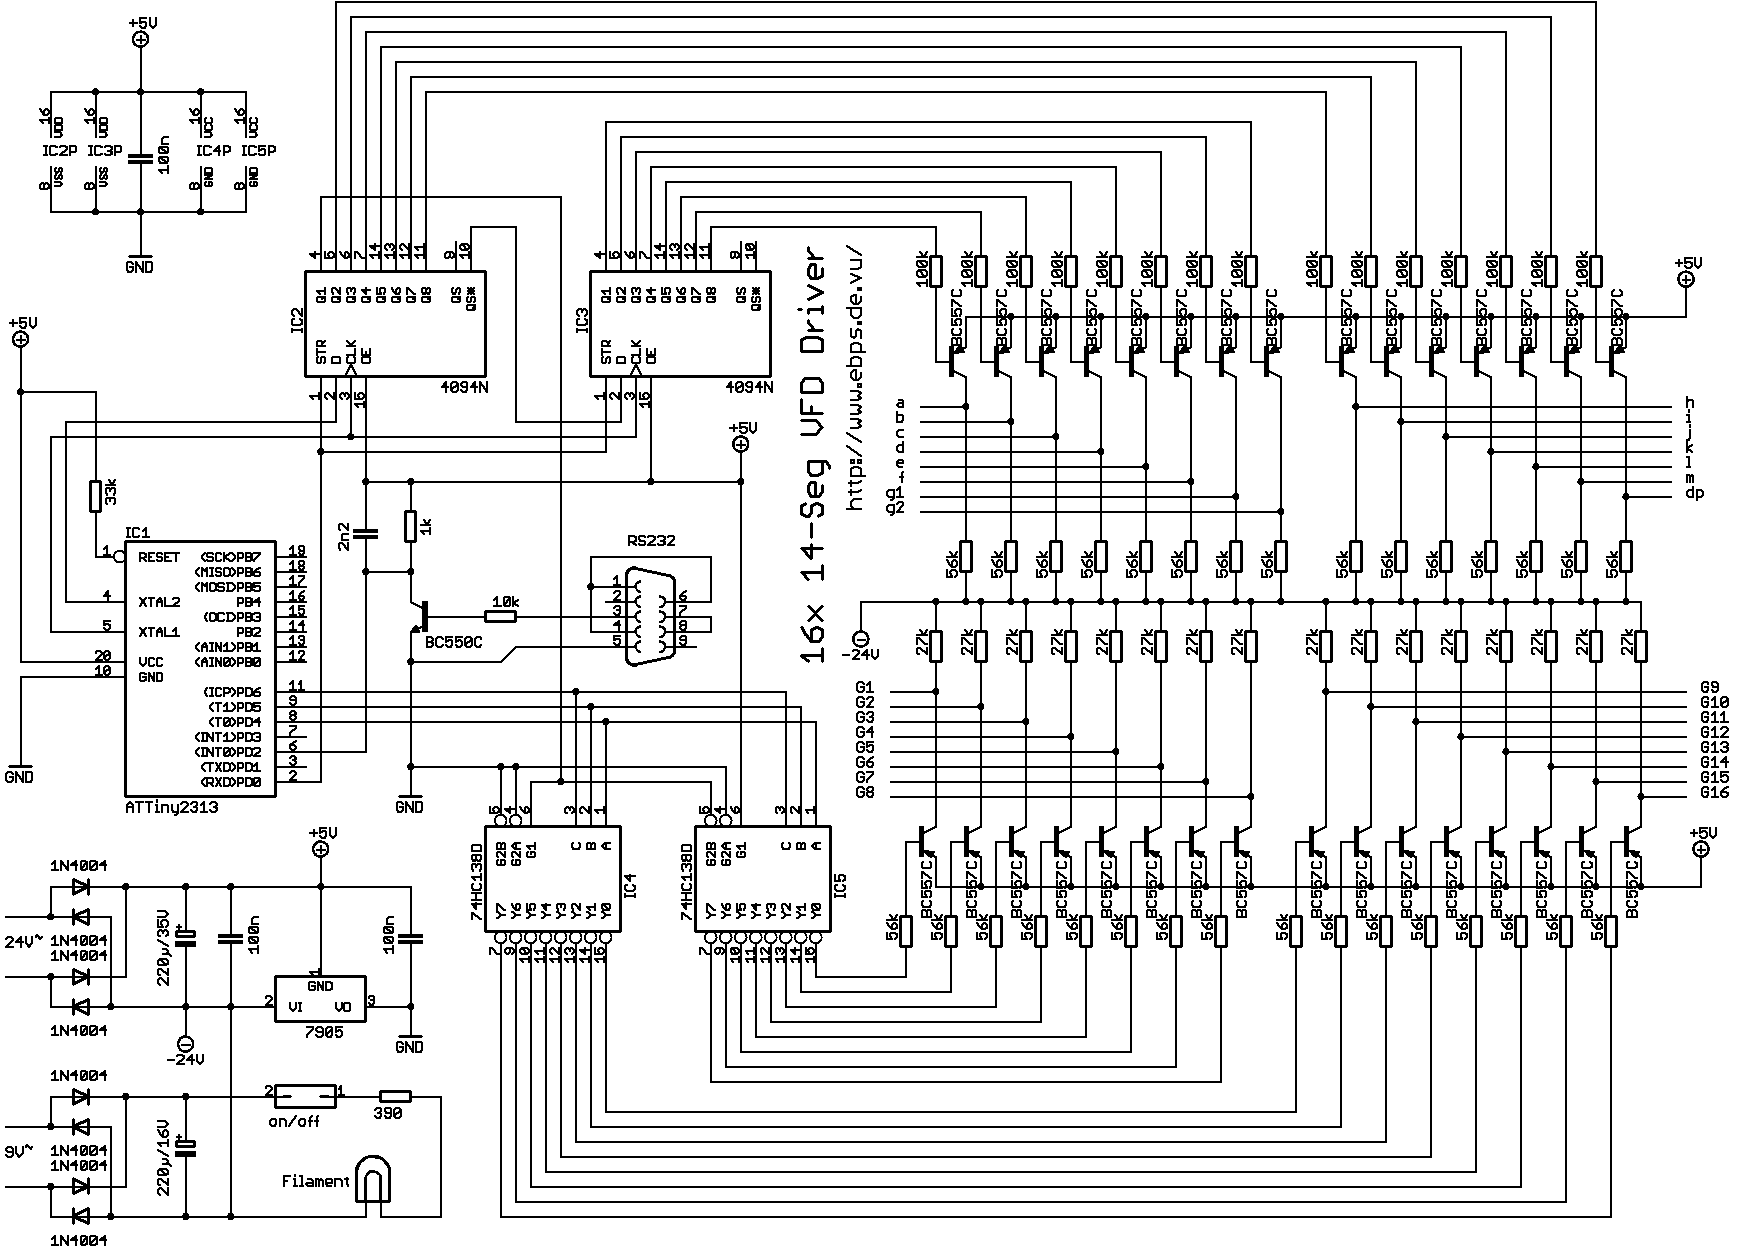 Fine Pm1000ii Wiring To Icom A200 Adornment - Electrical Diagram ...